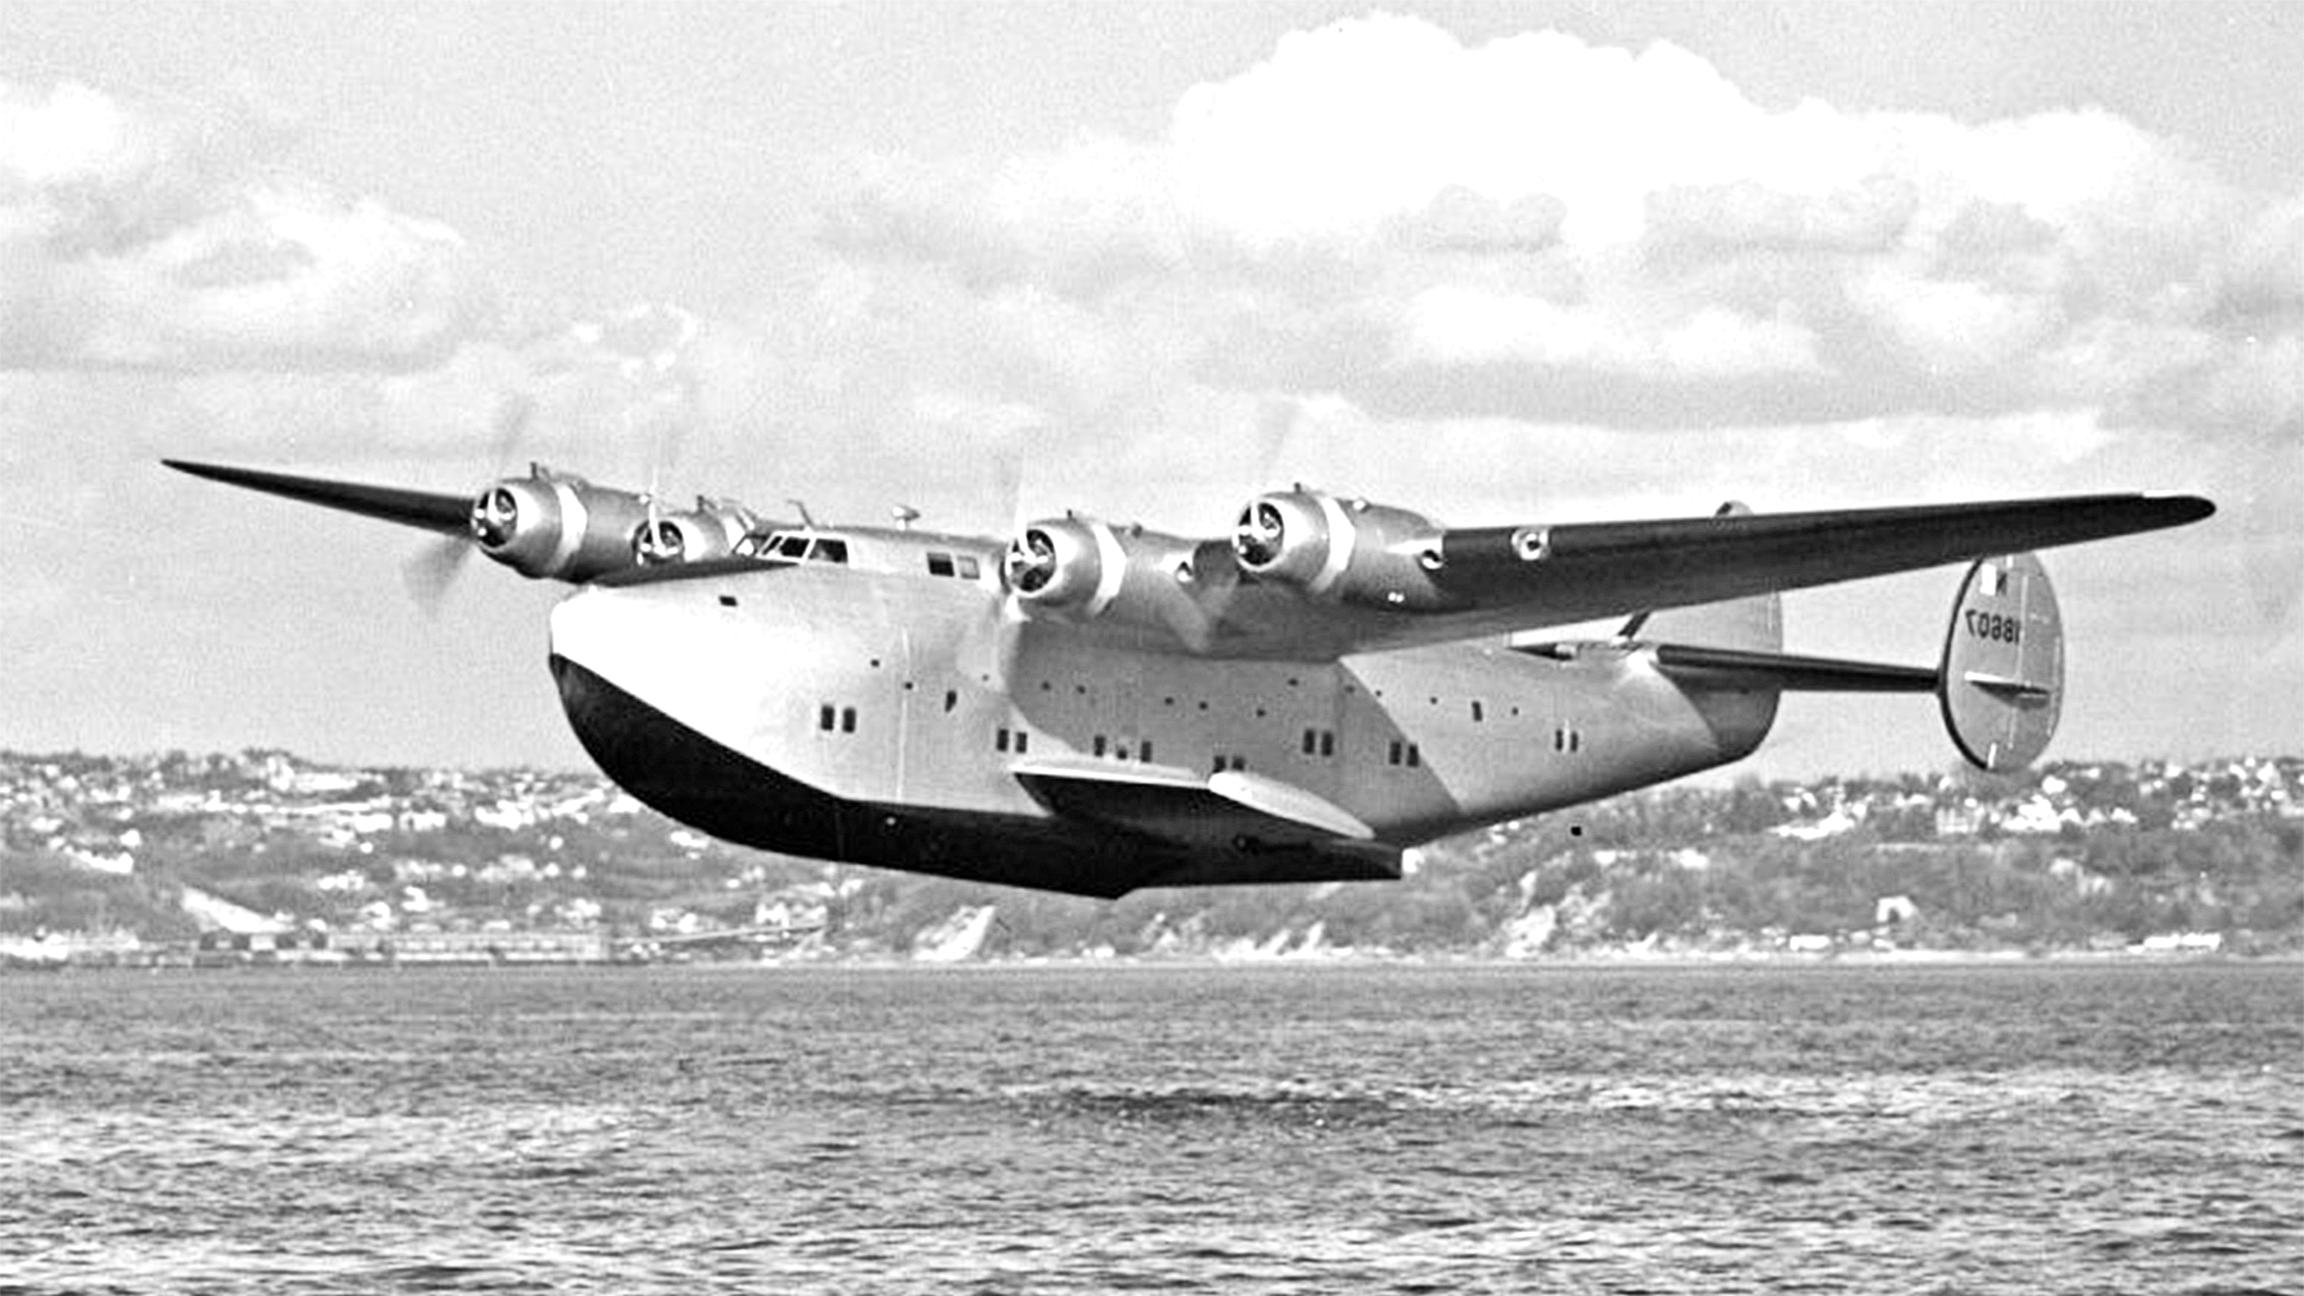 boeing clipper for sale